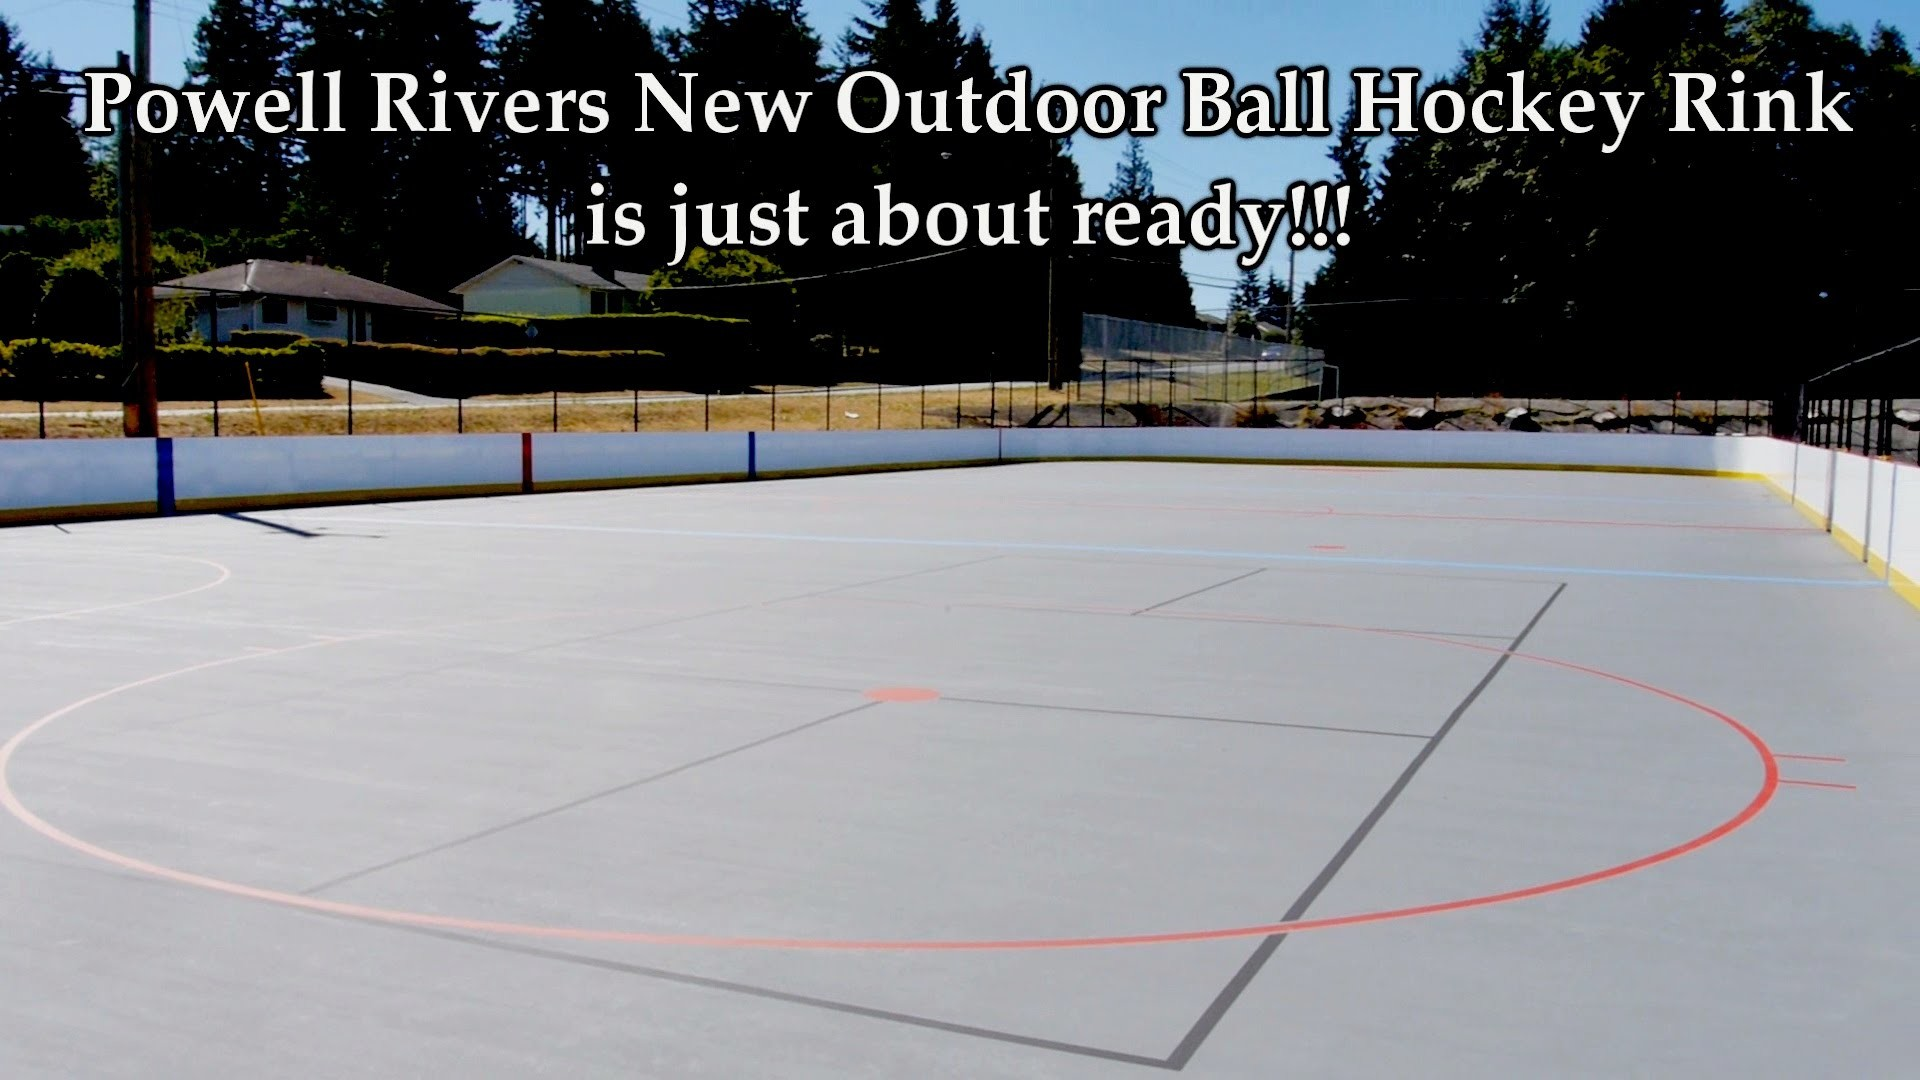 How To Build A New Outdoor Ball Hockey Arena (Powell River)